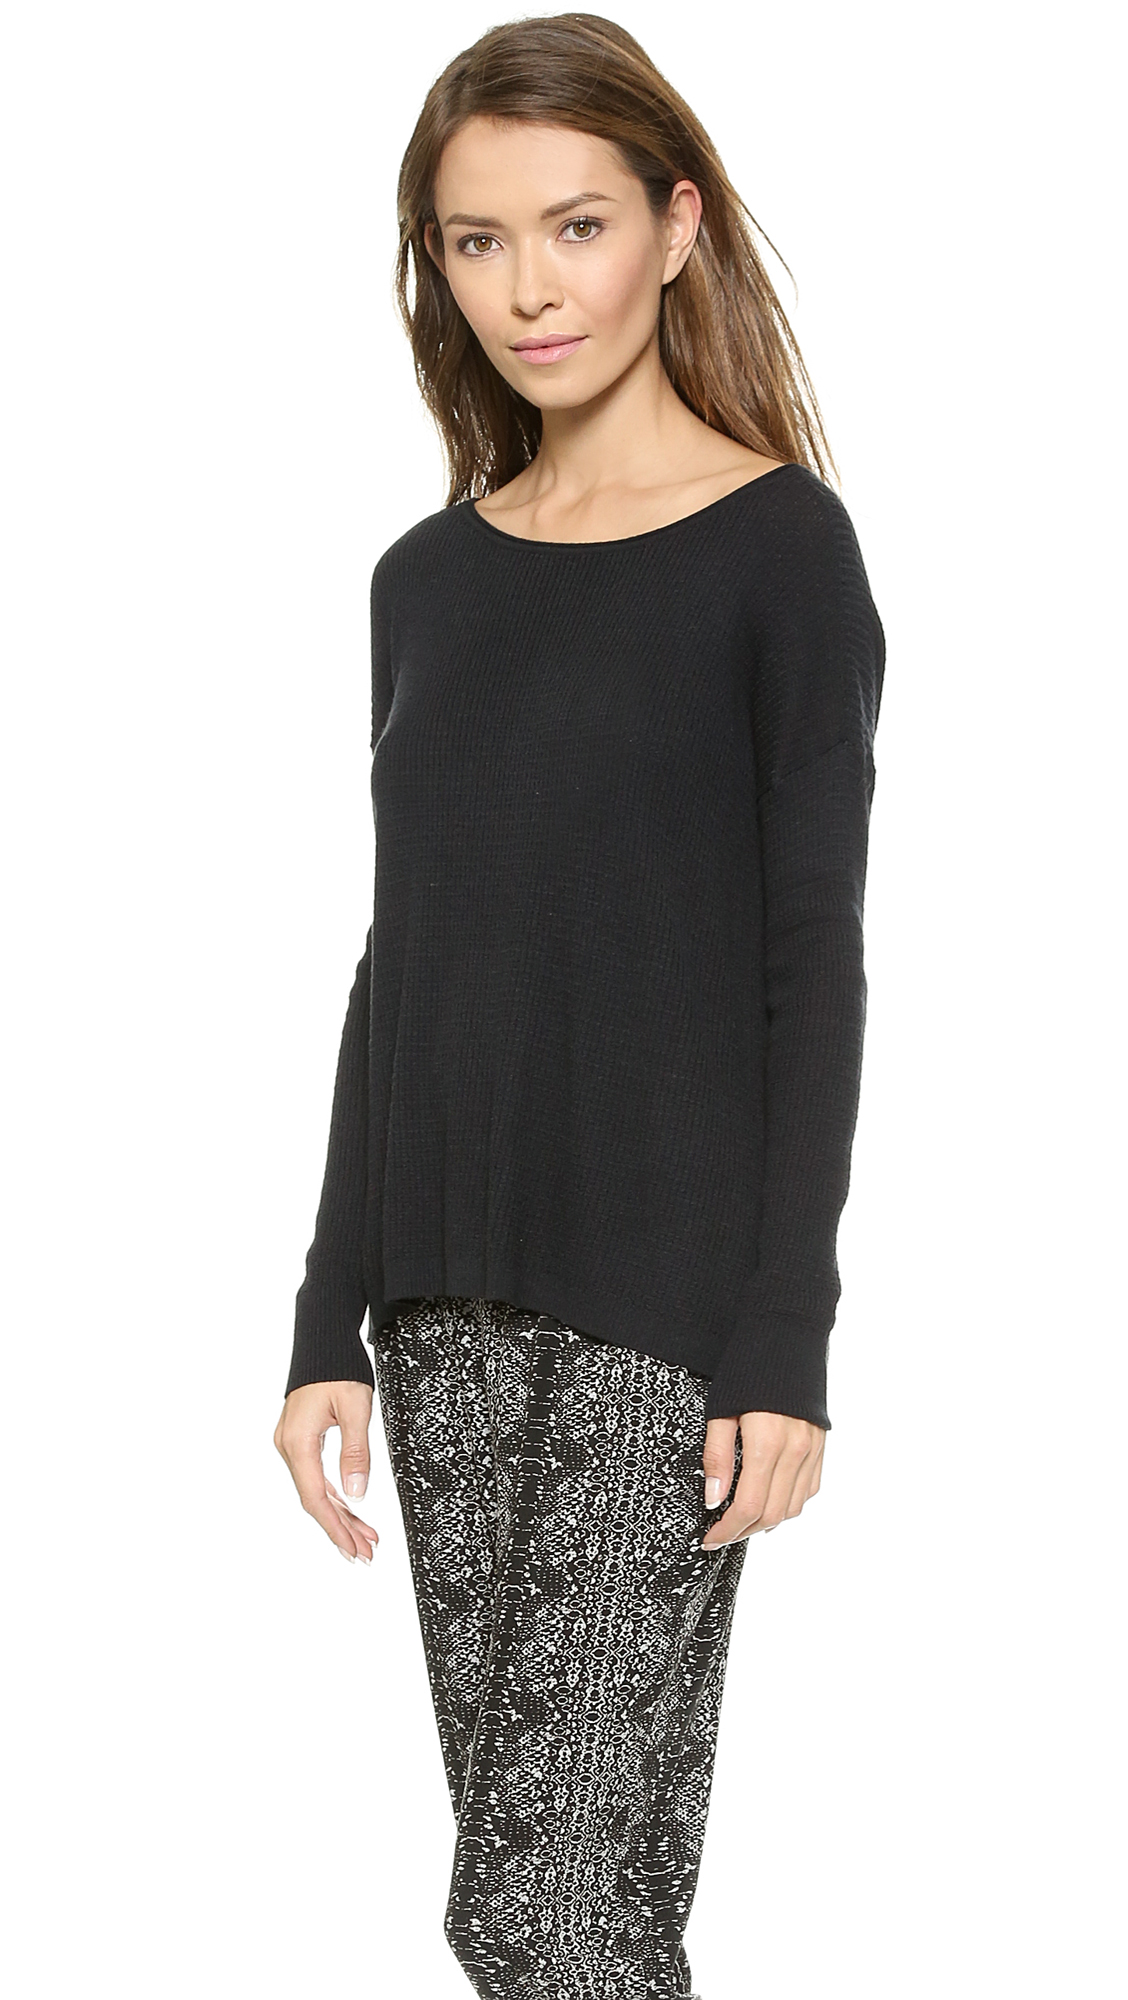 Soft joie madilyn sweater